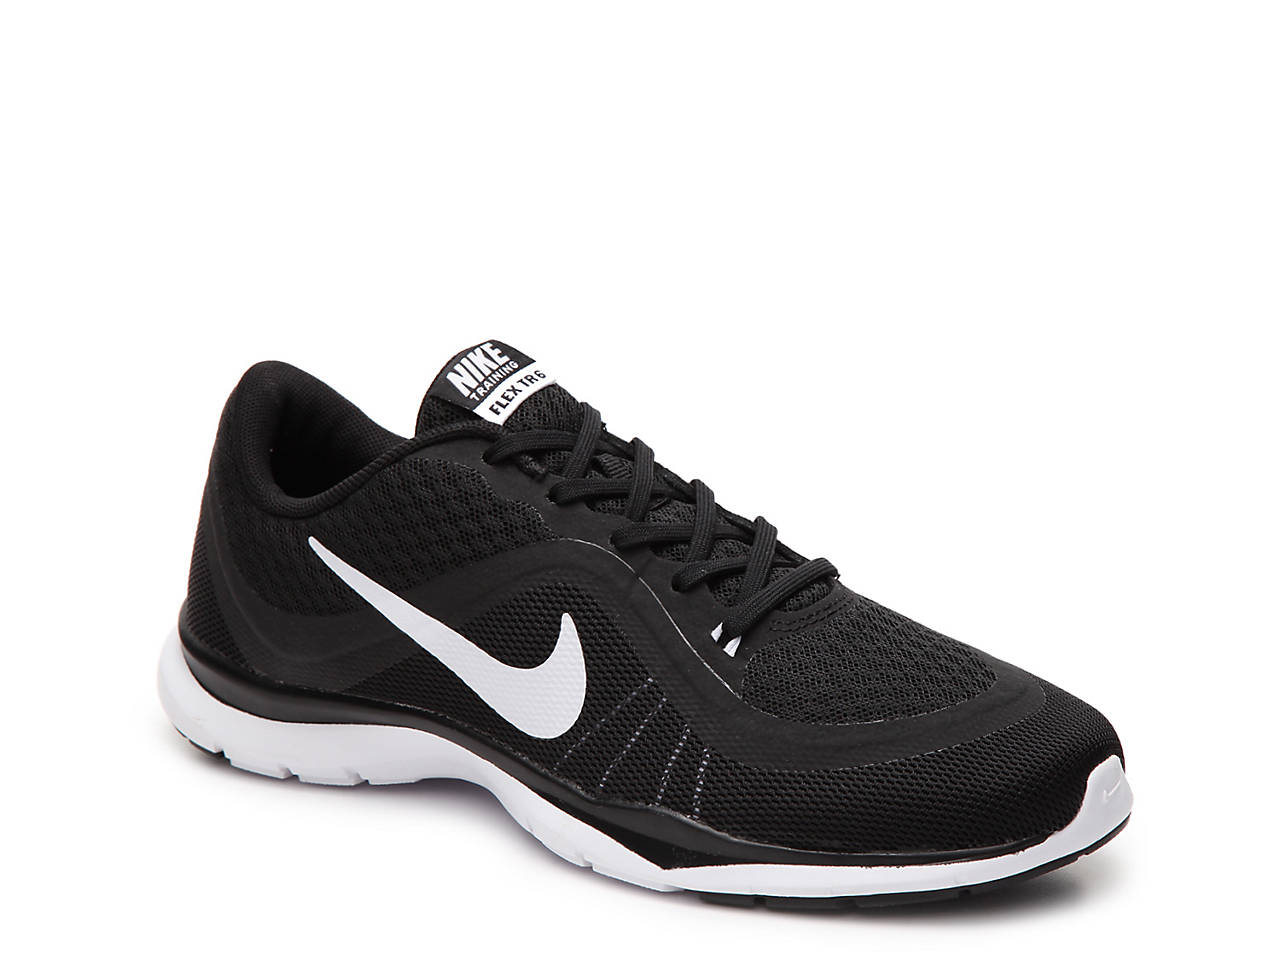 f9da7f043a4f Nike Flex Trainer 6 Training Shoe - Women s Women s Shoes